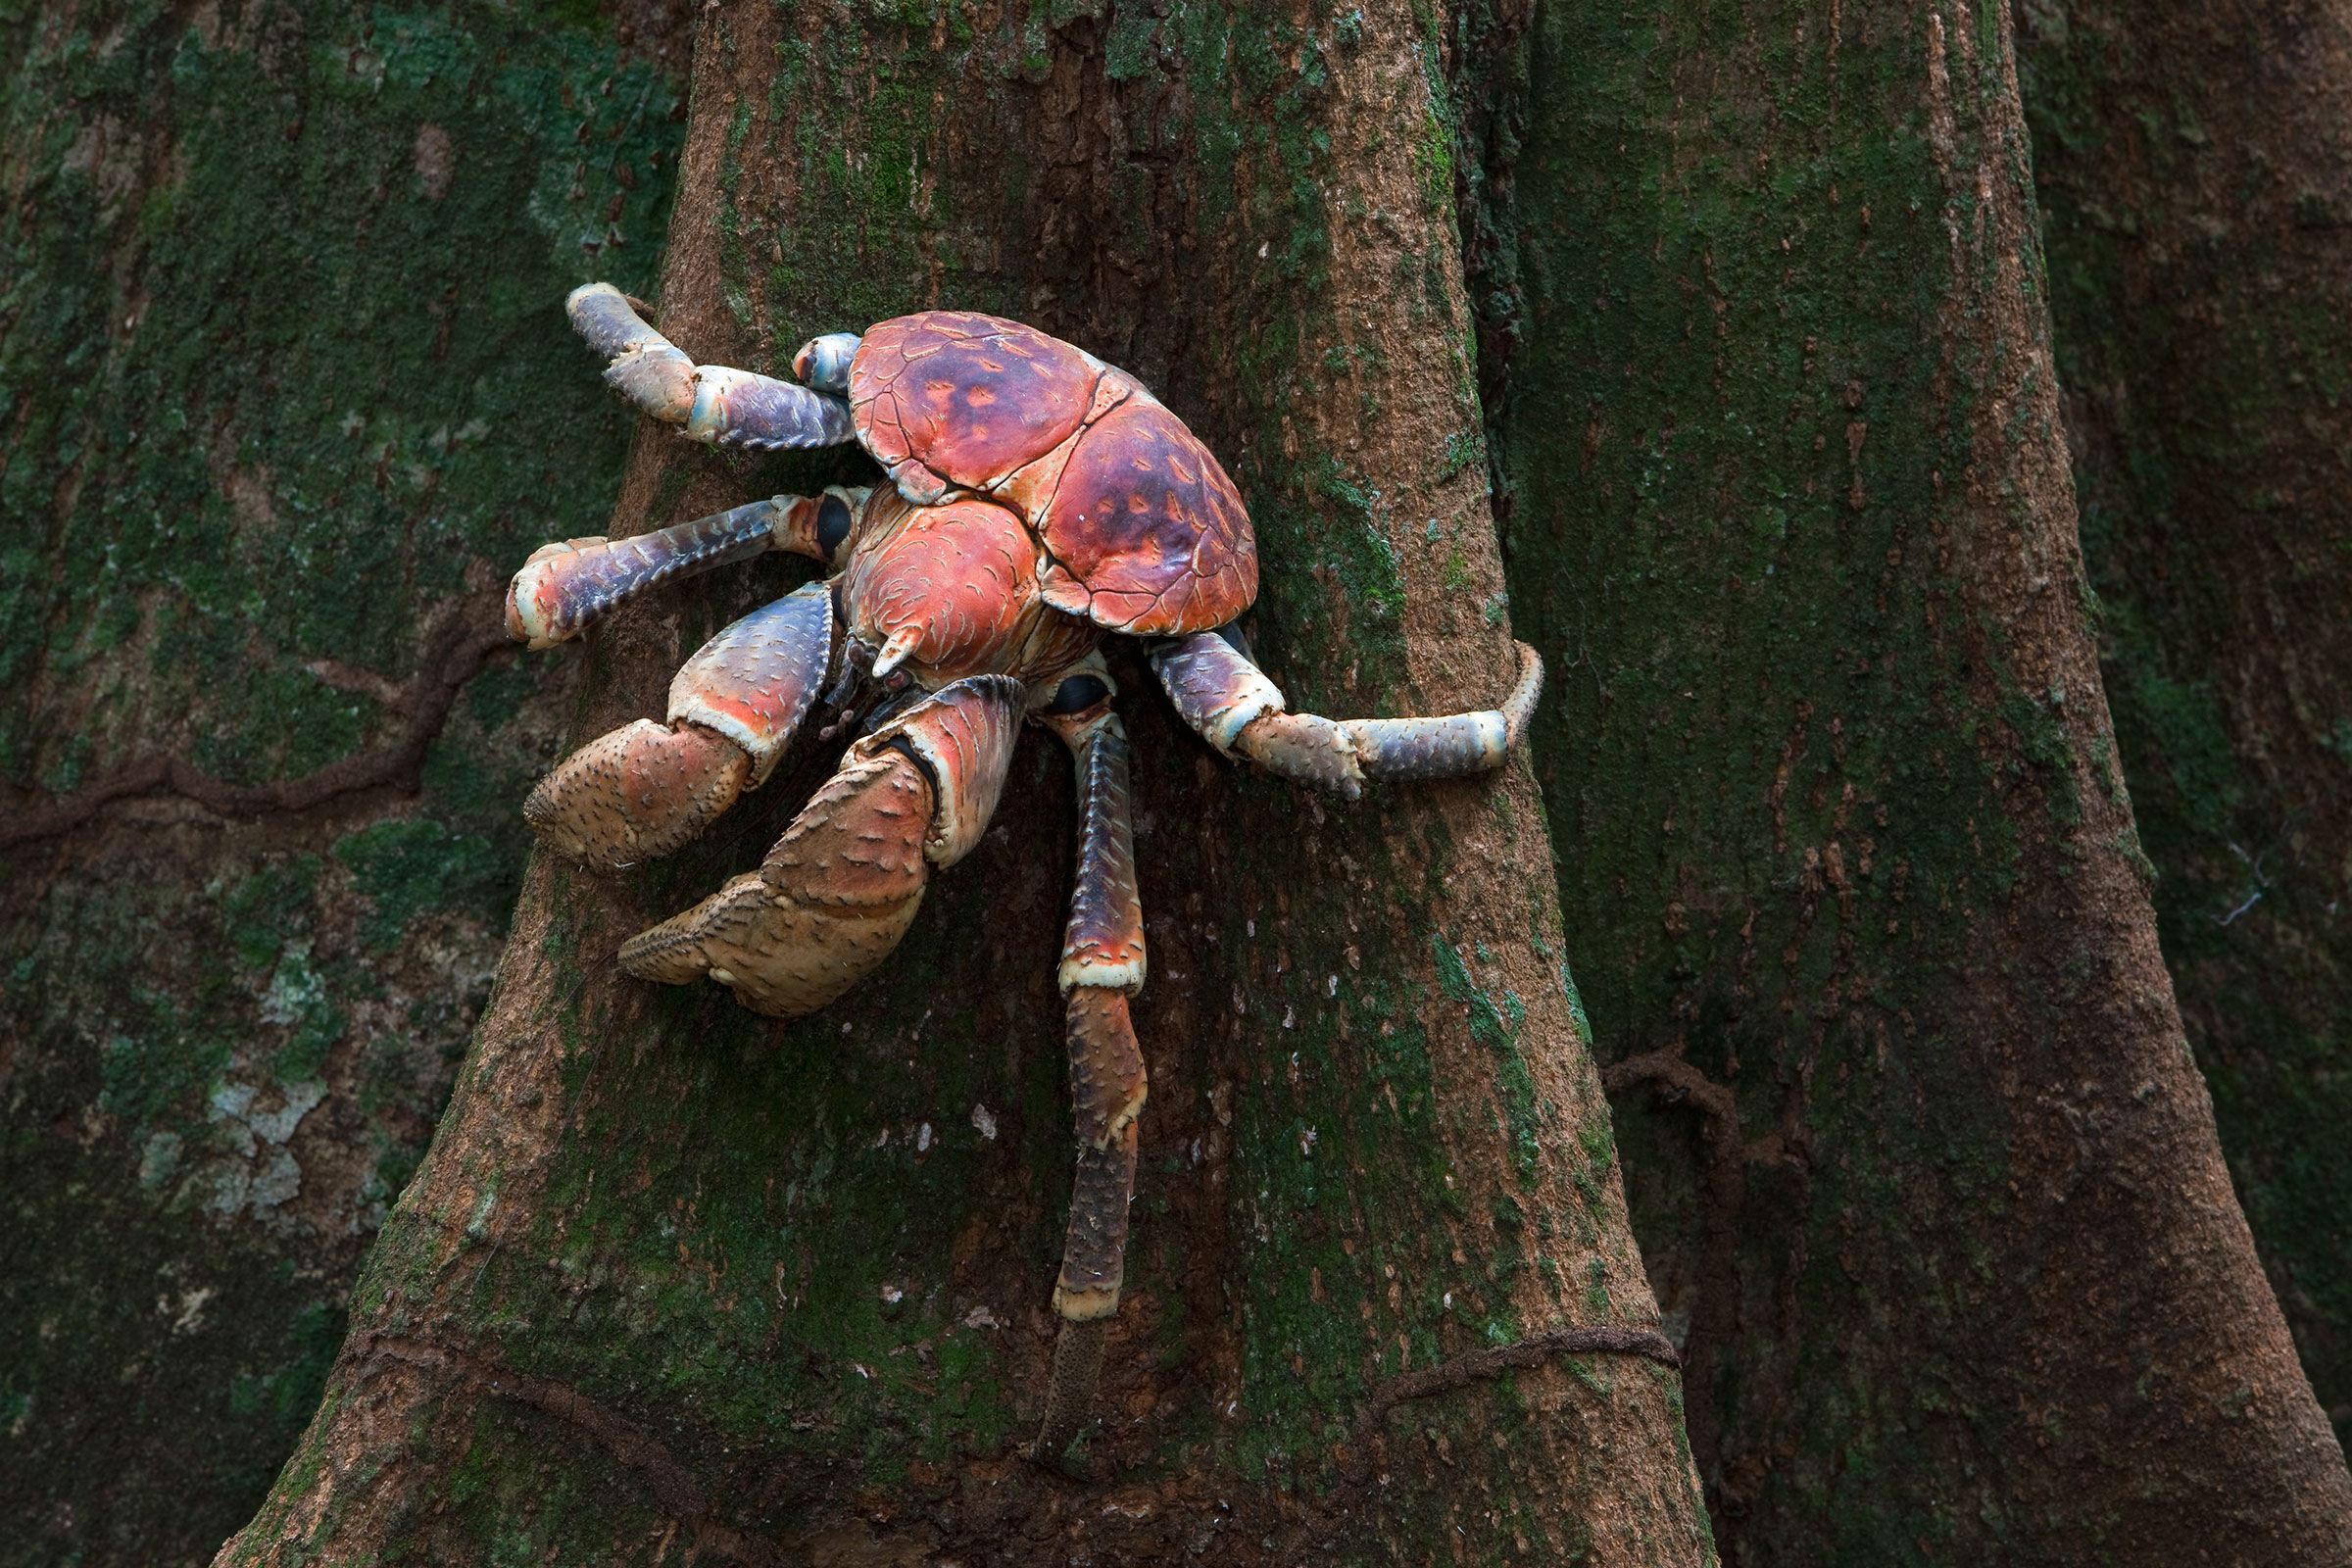 A coconut crab clings eerily to a tree trunk on Christmas Island in the Indian Ocean. Ingo Arndt/Minden Pictures